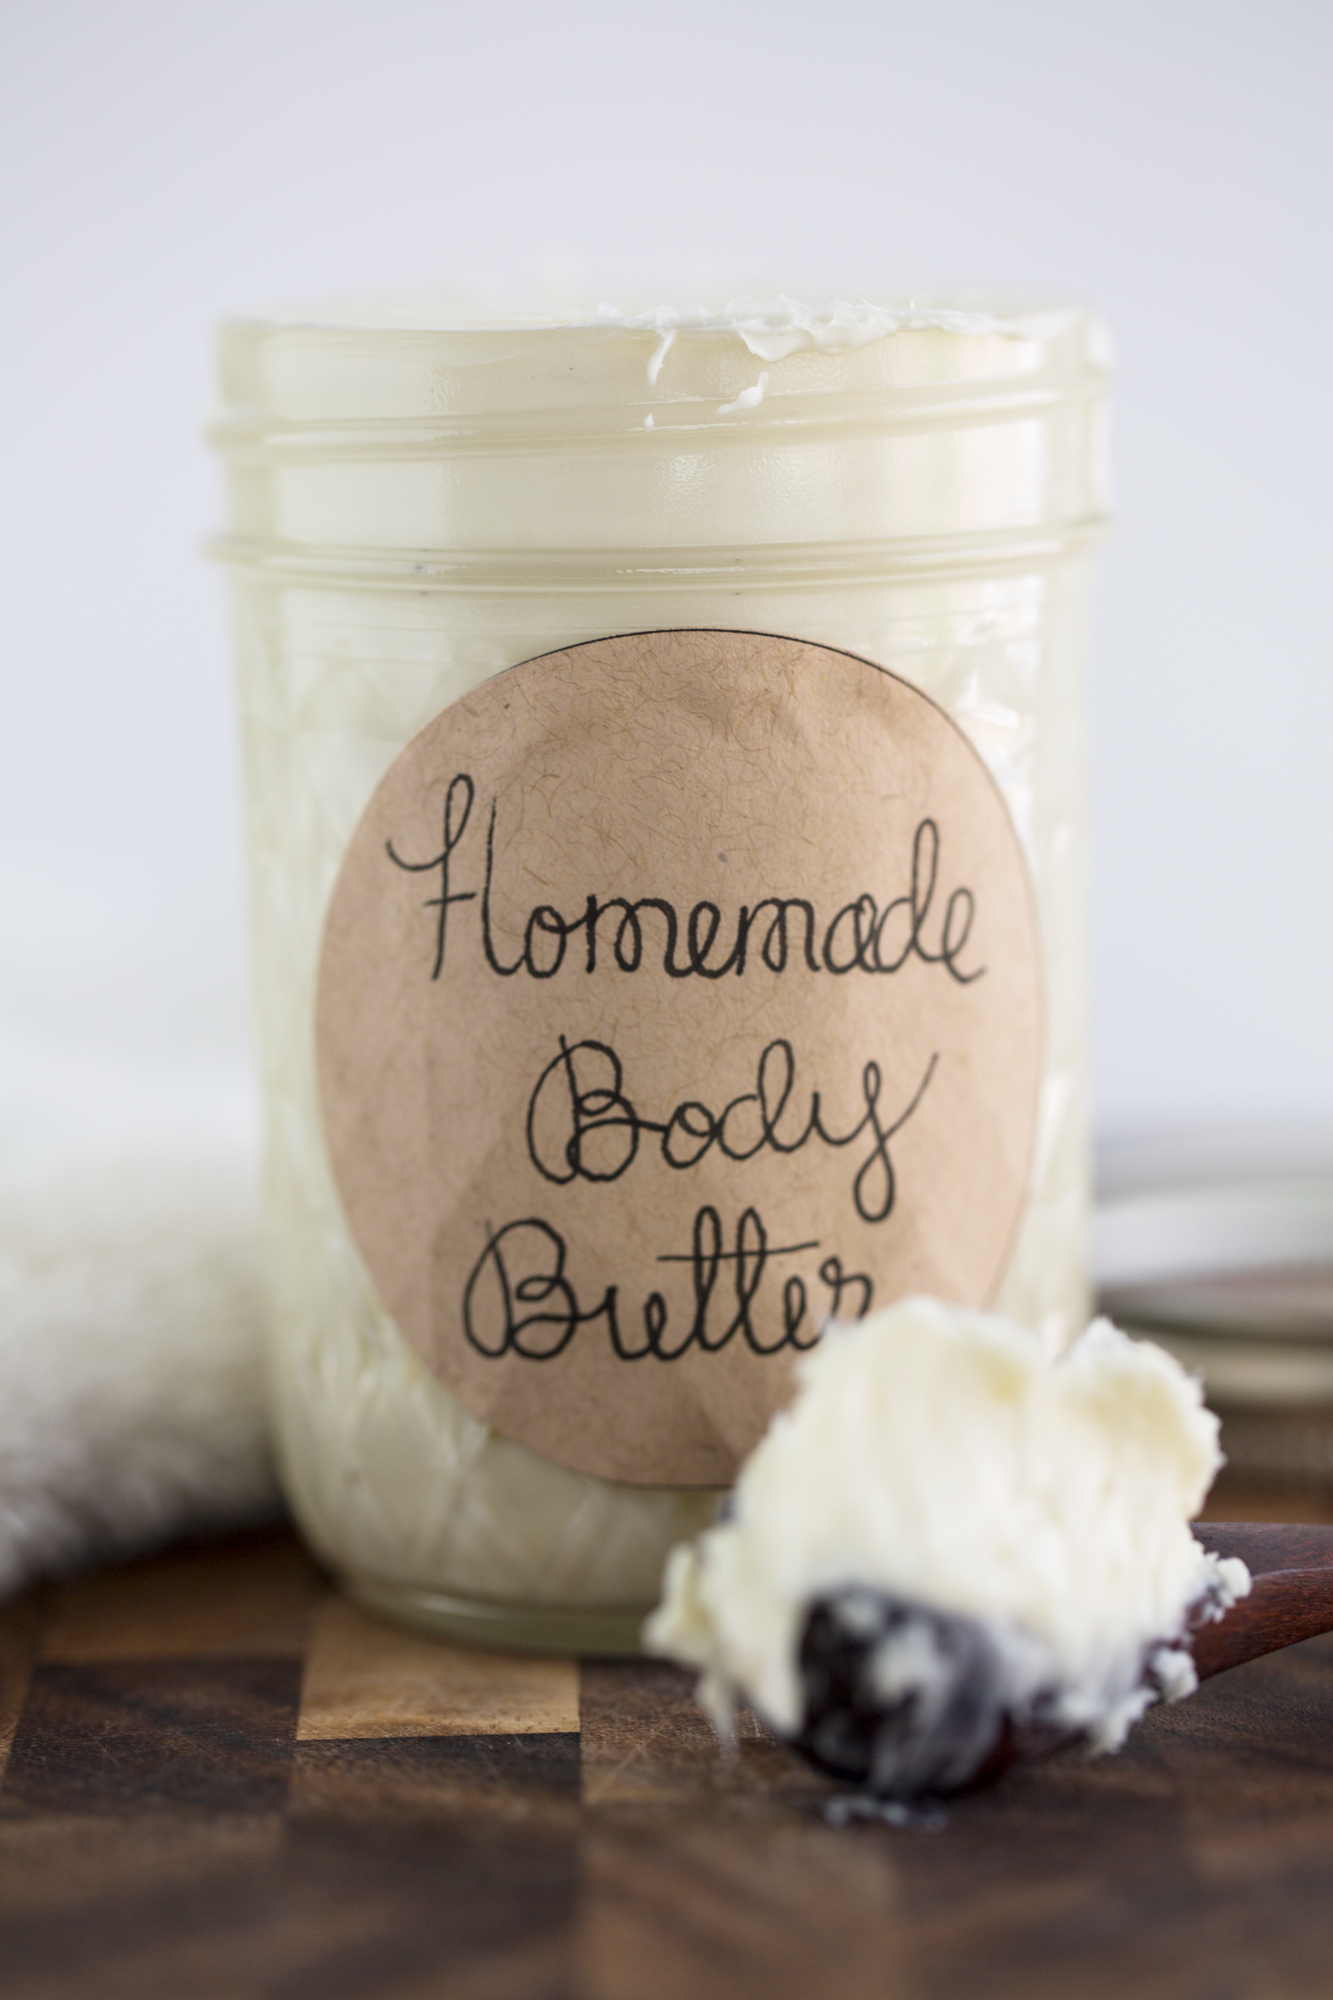 How To Make Organic Natural Body Butter